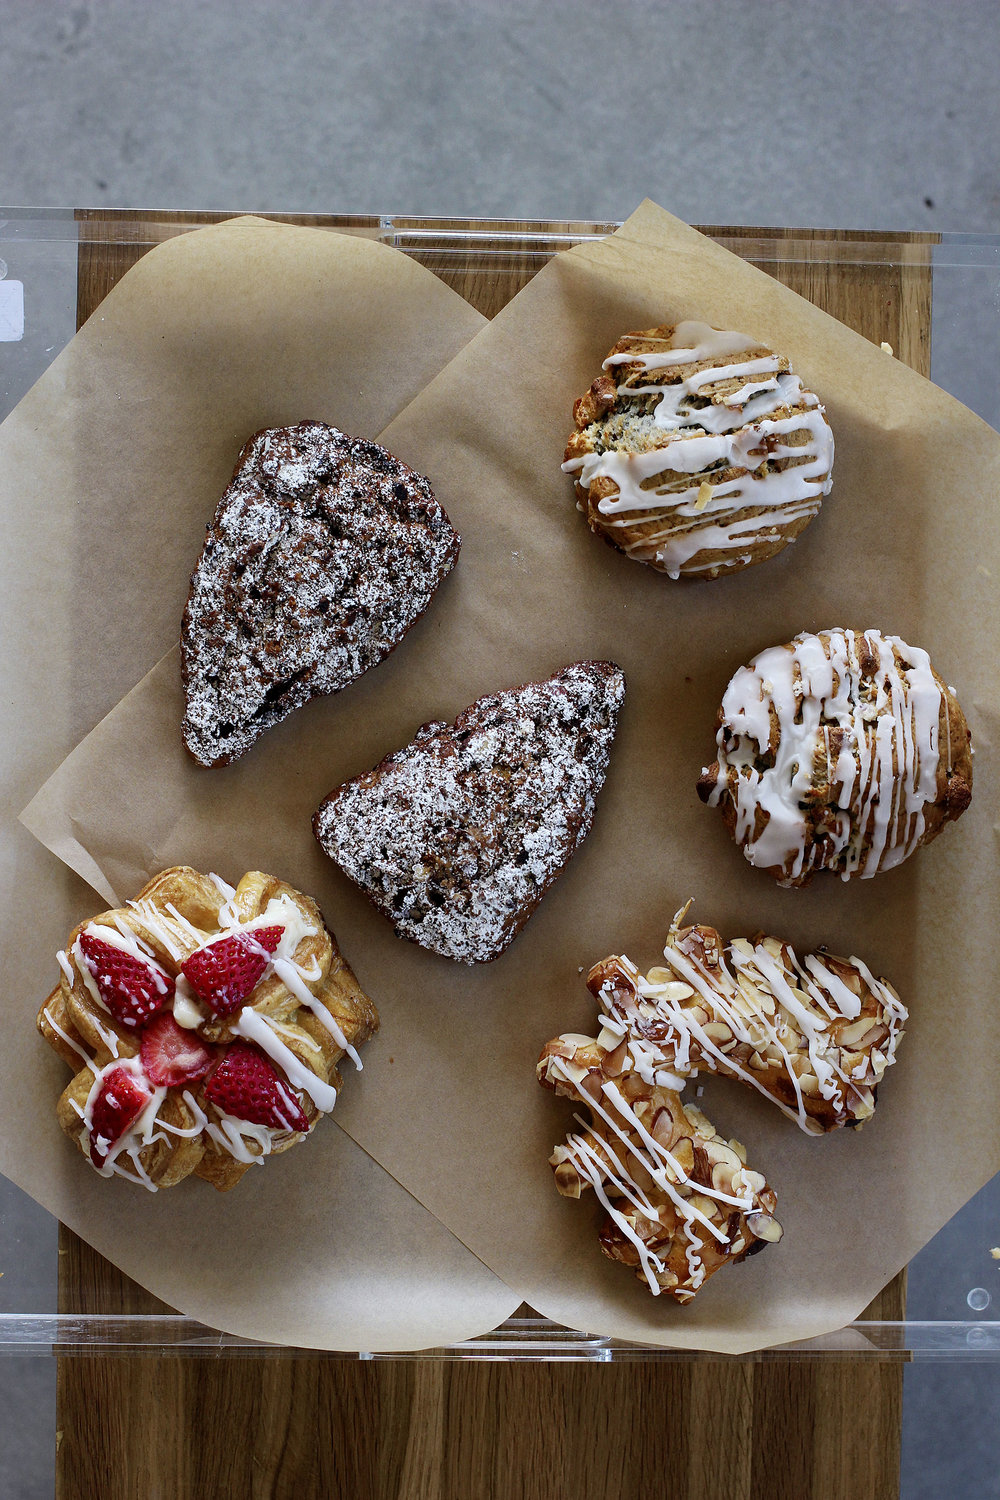 Delicious baked goods by Rockenwagner Bakery